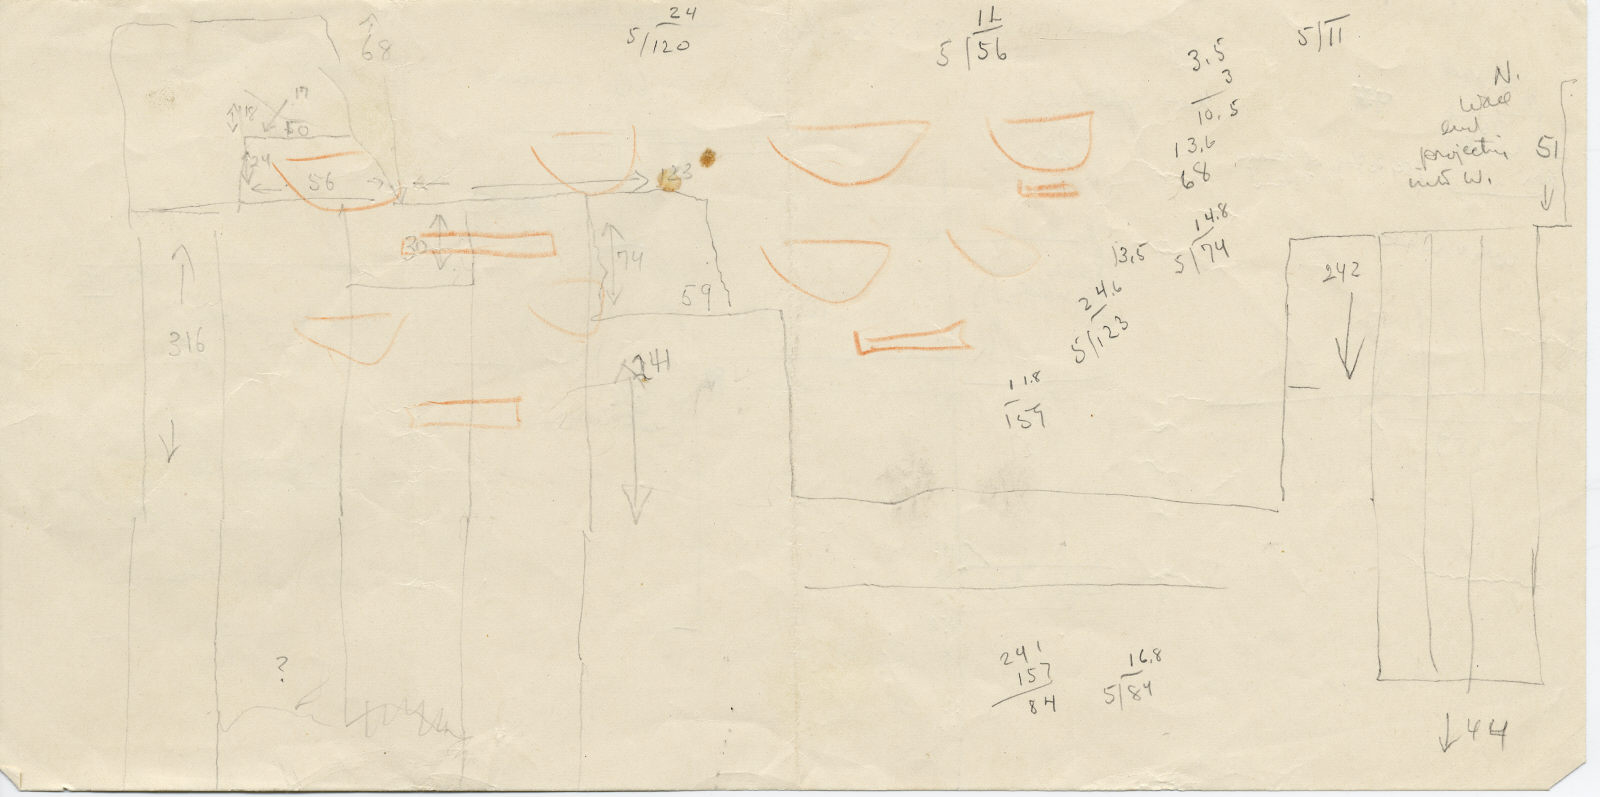 Maps and plans: Sketch elevation of G 5110, W wall